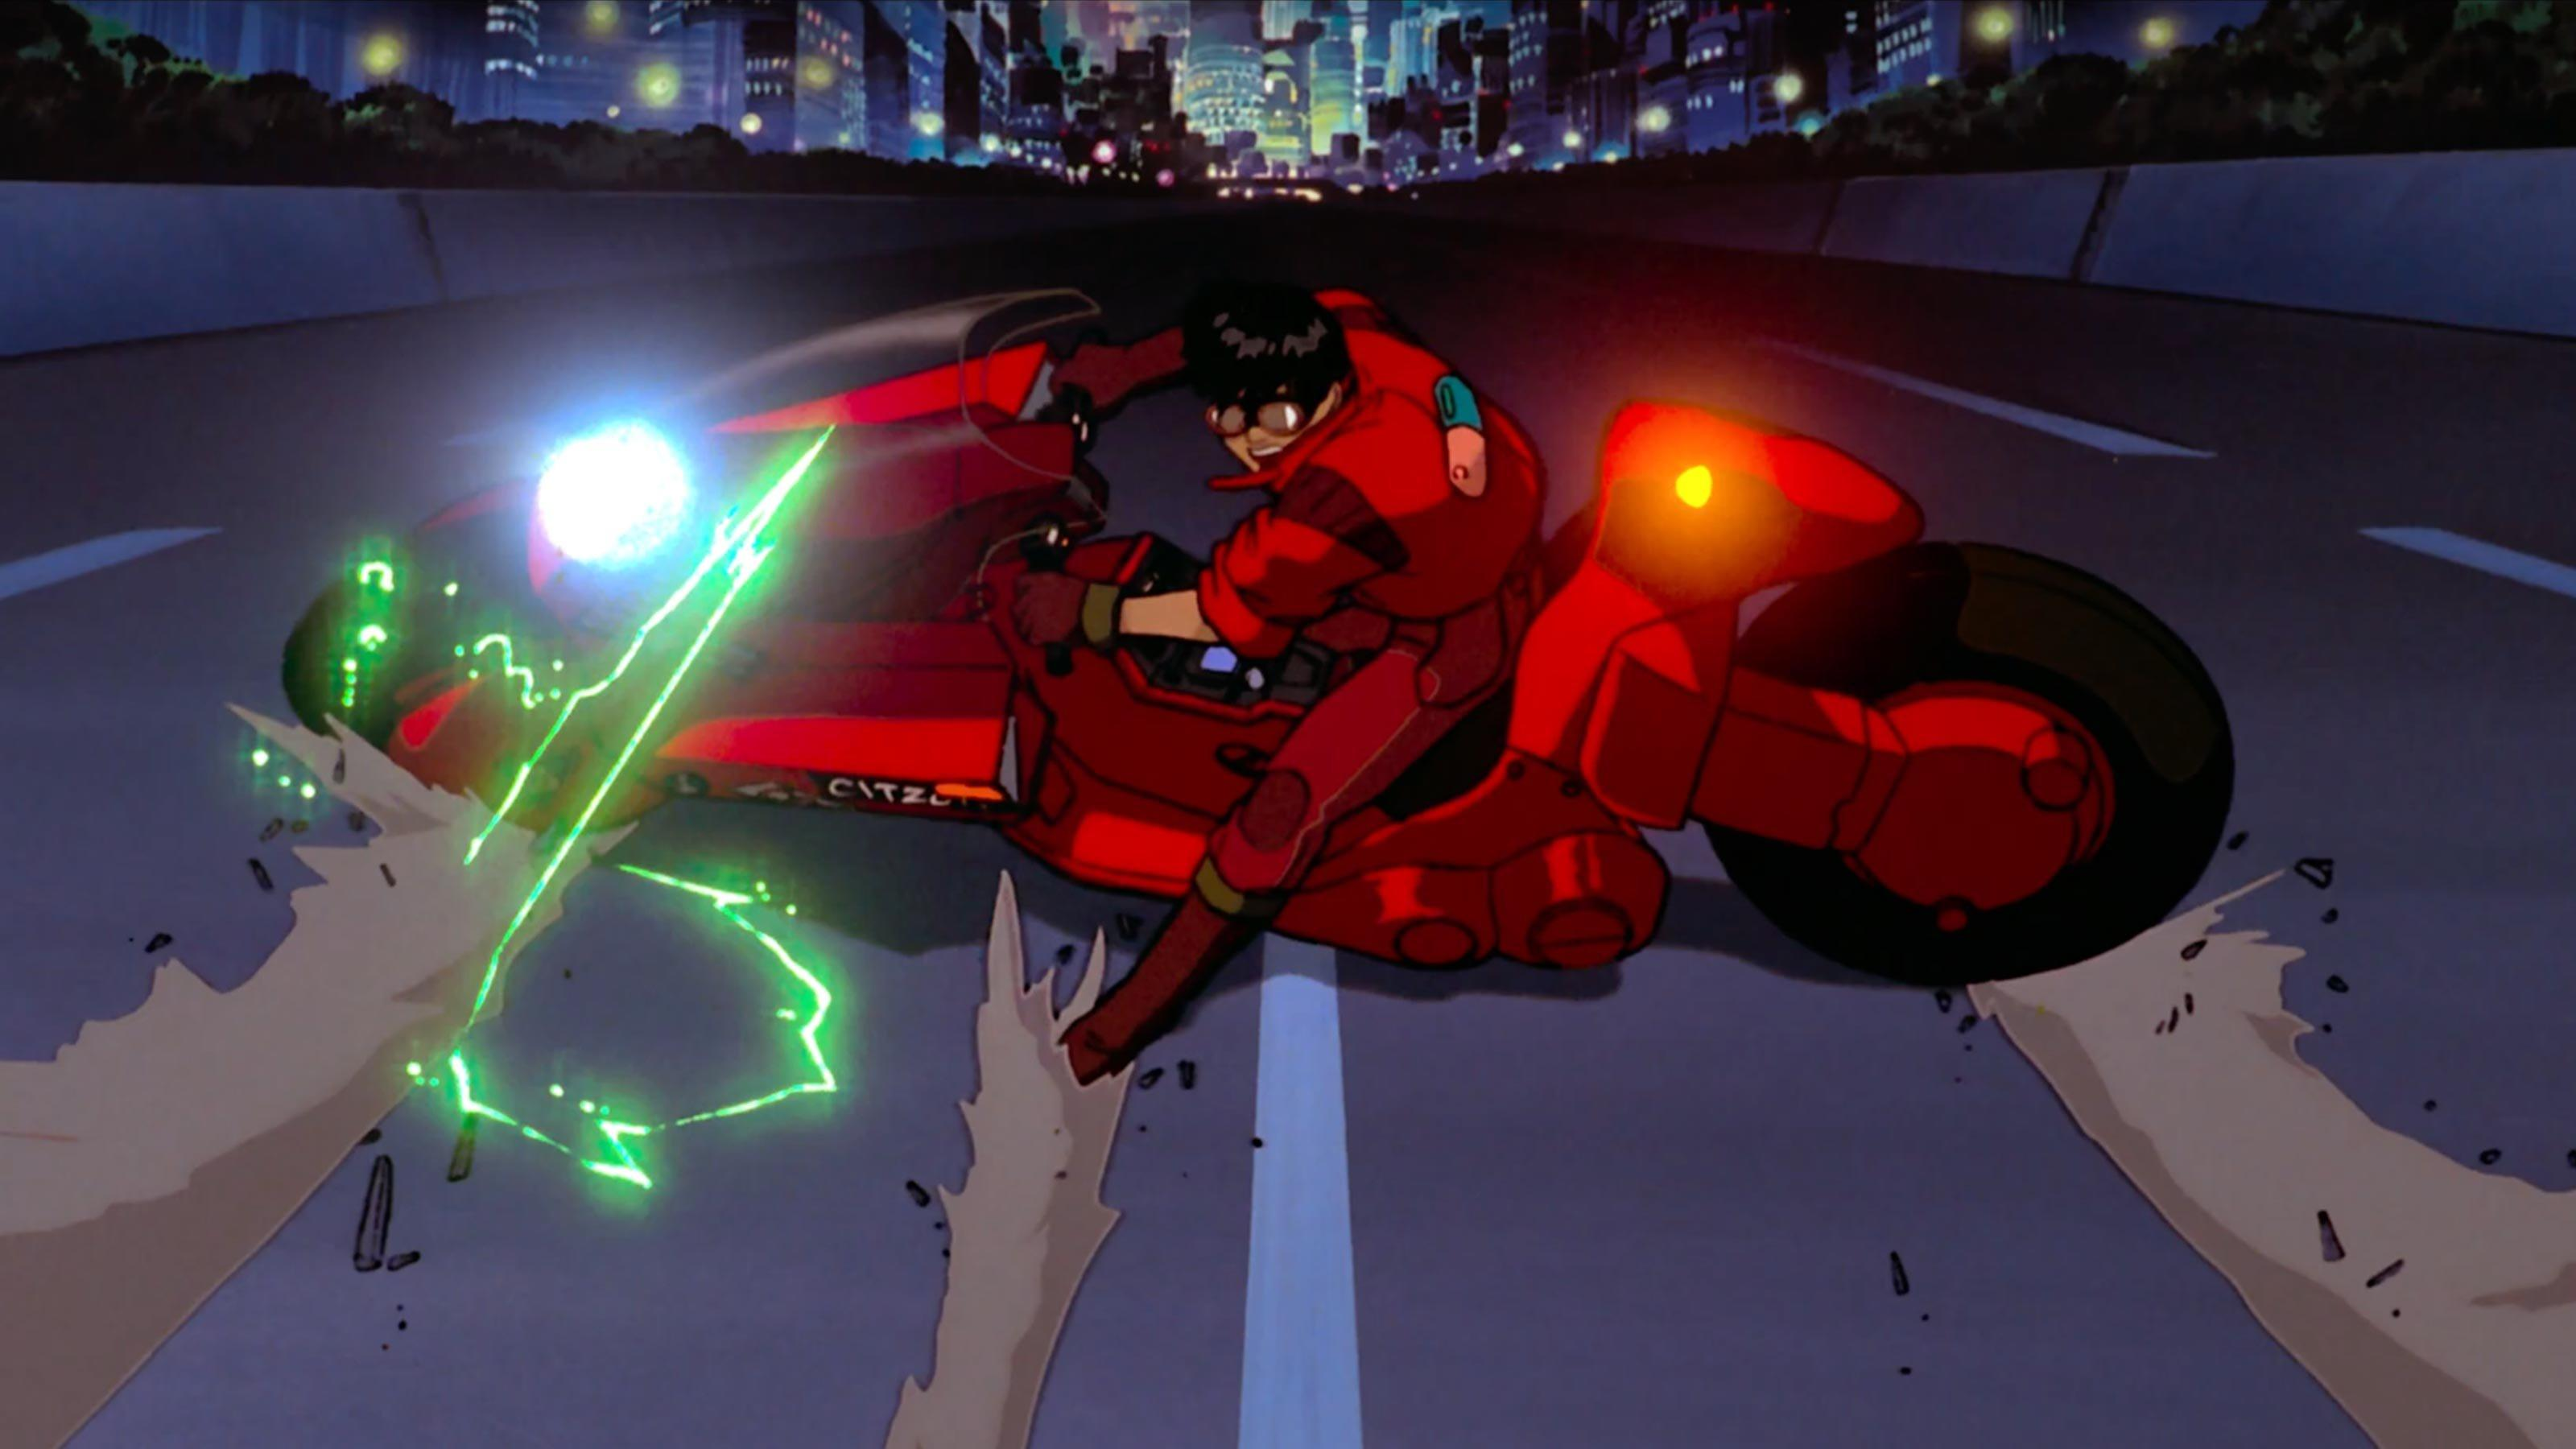 New Akira anime 'project' in the works from creator